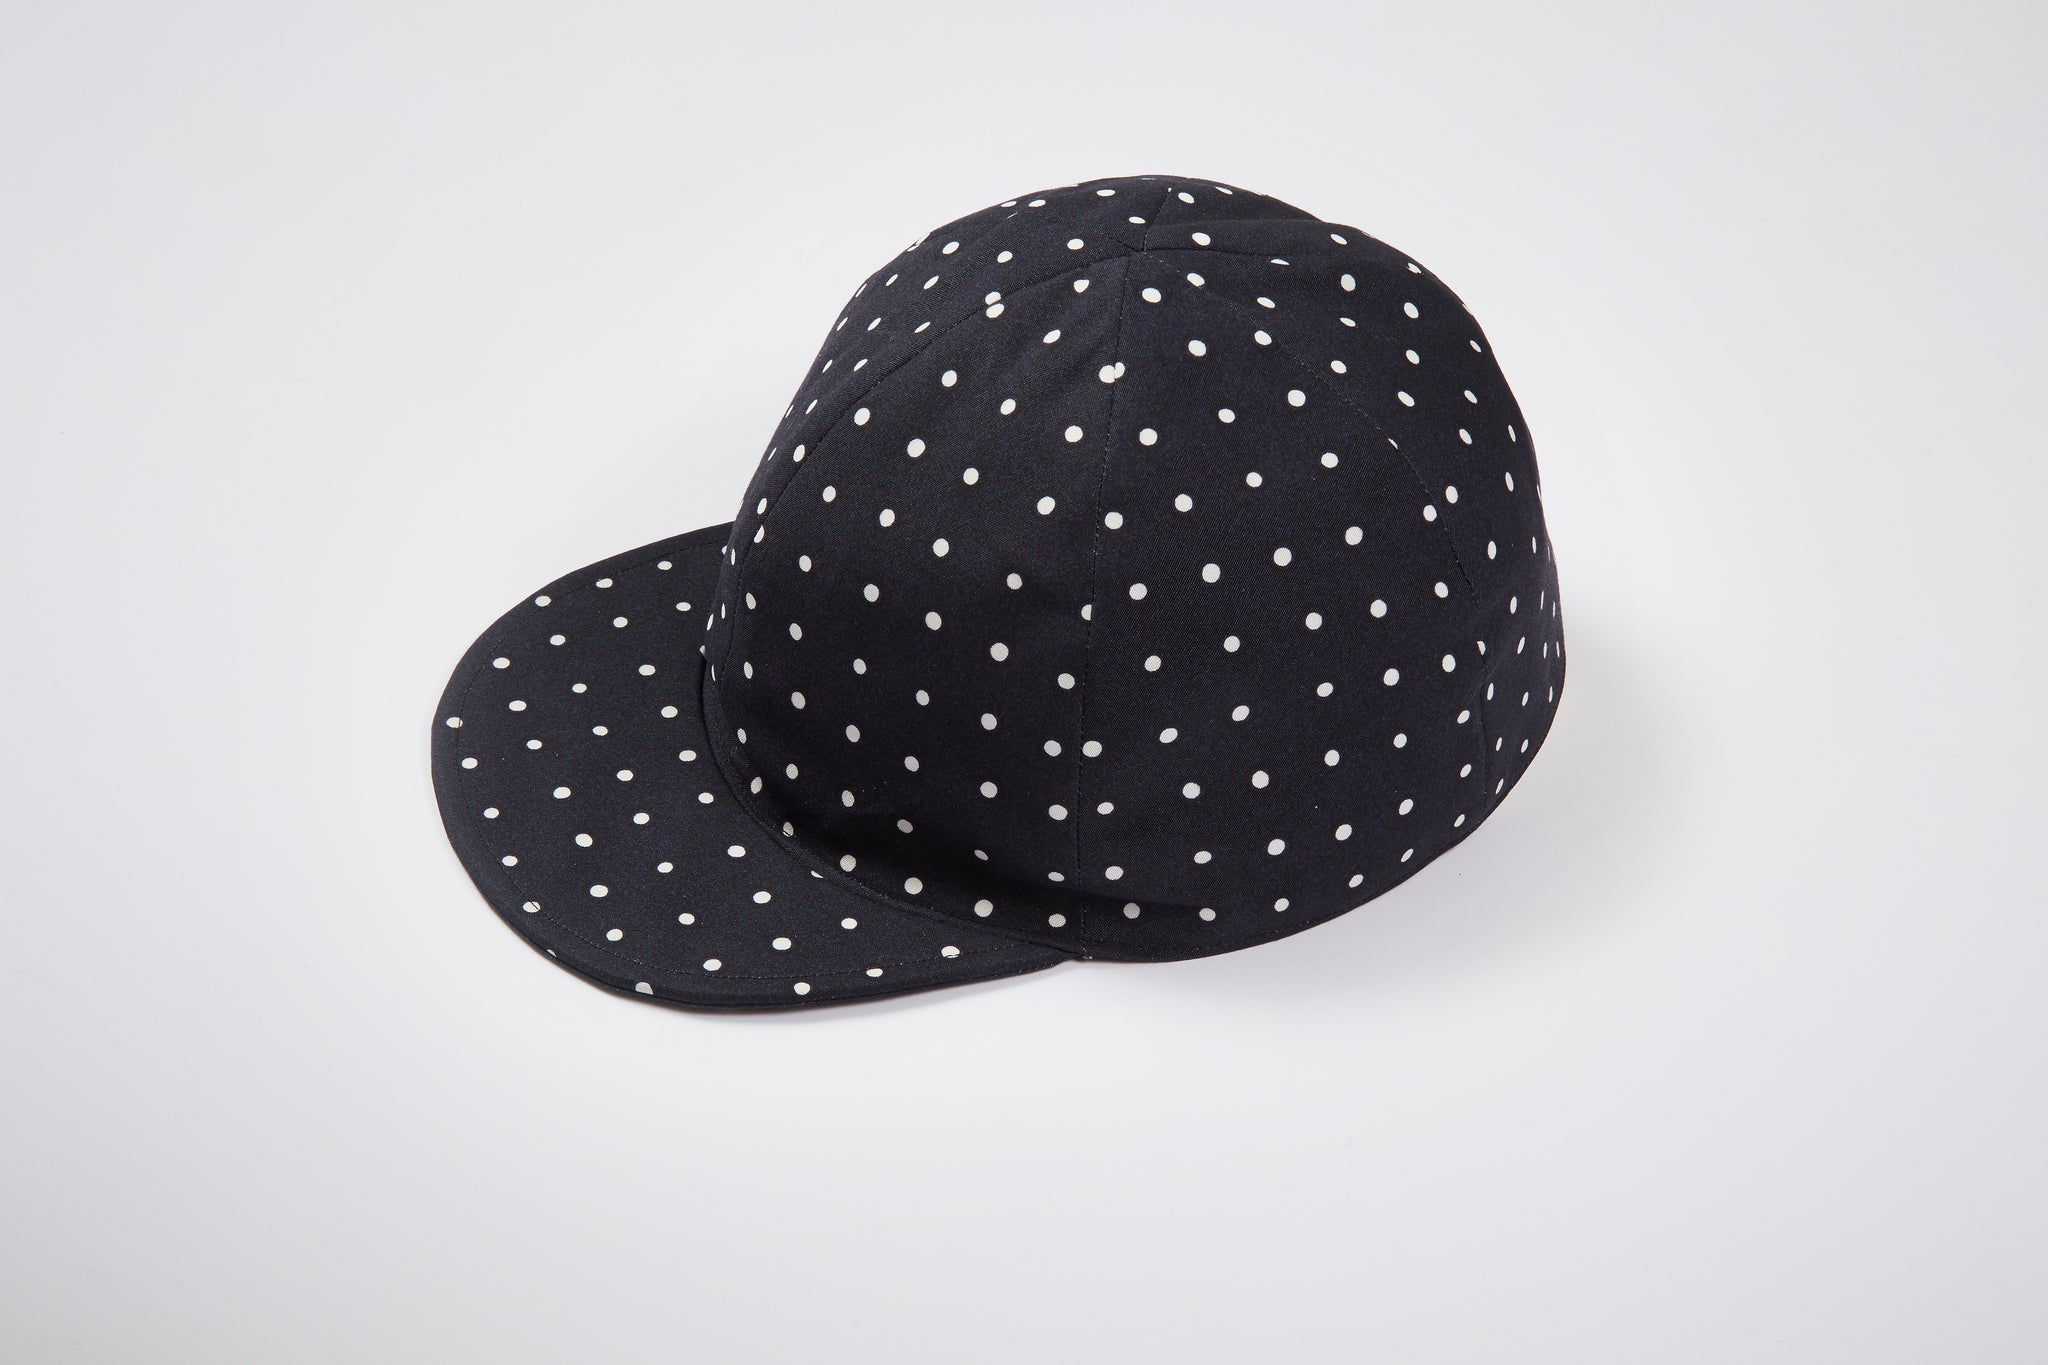 The Polka Dot Cotton Cap